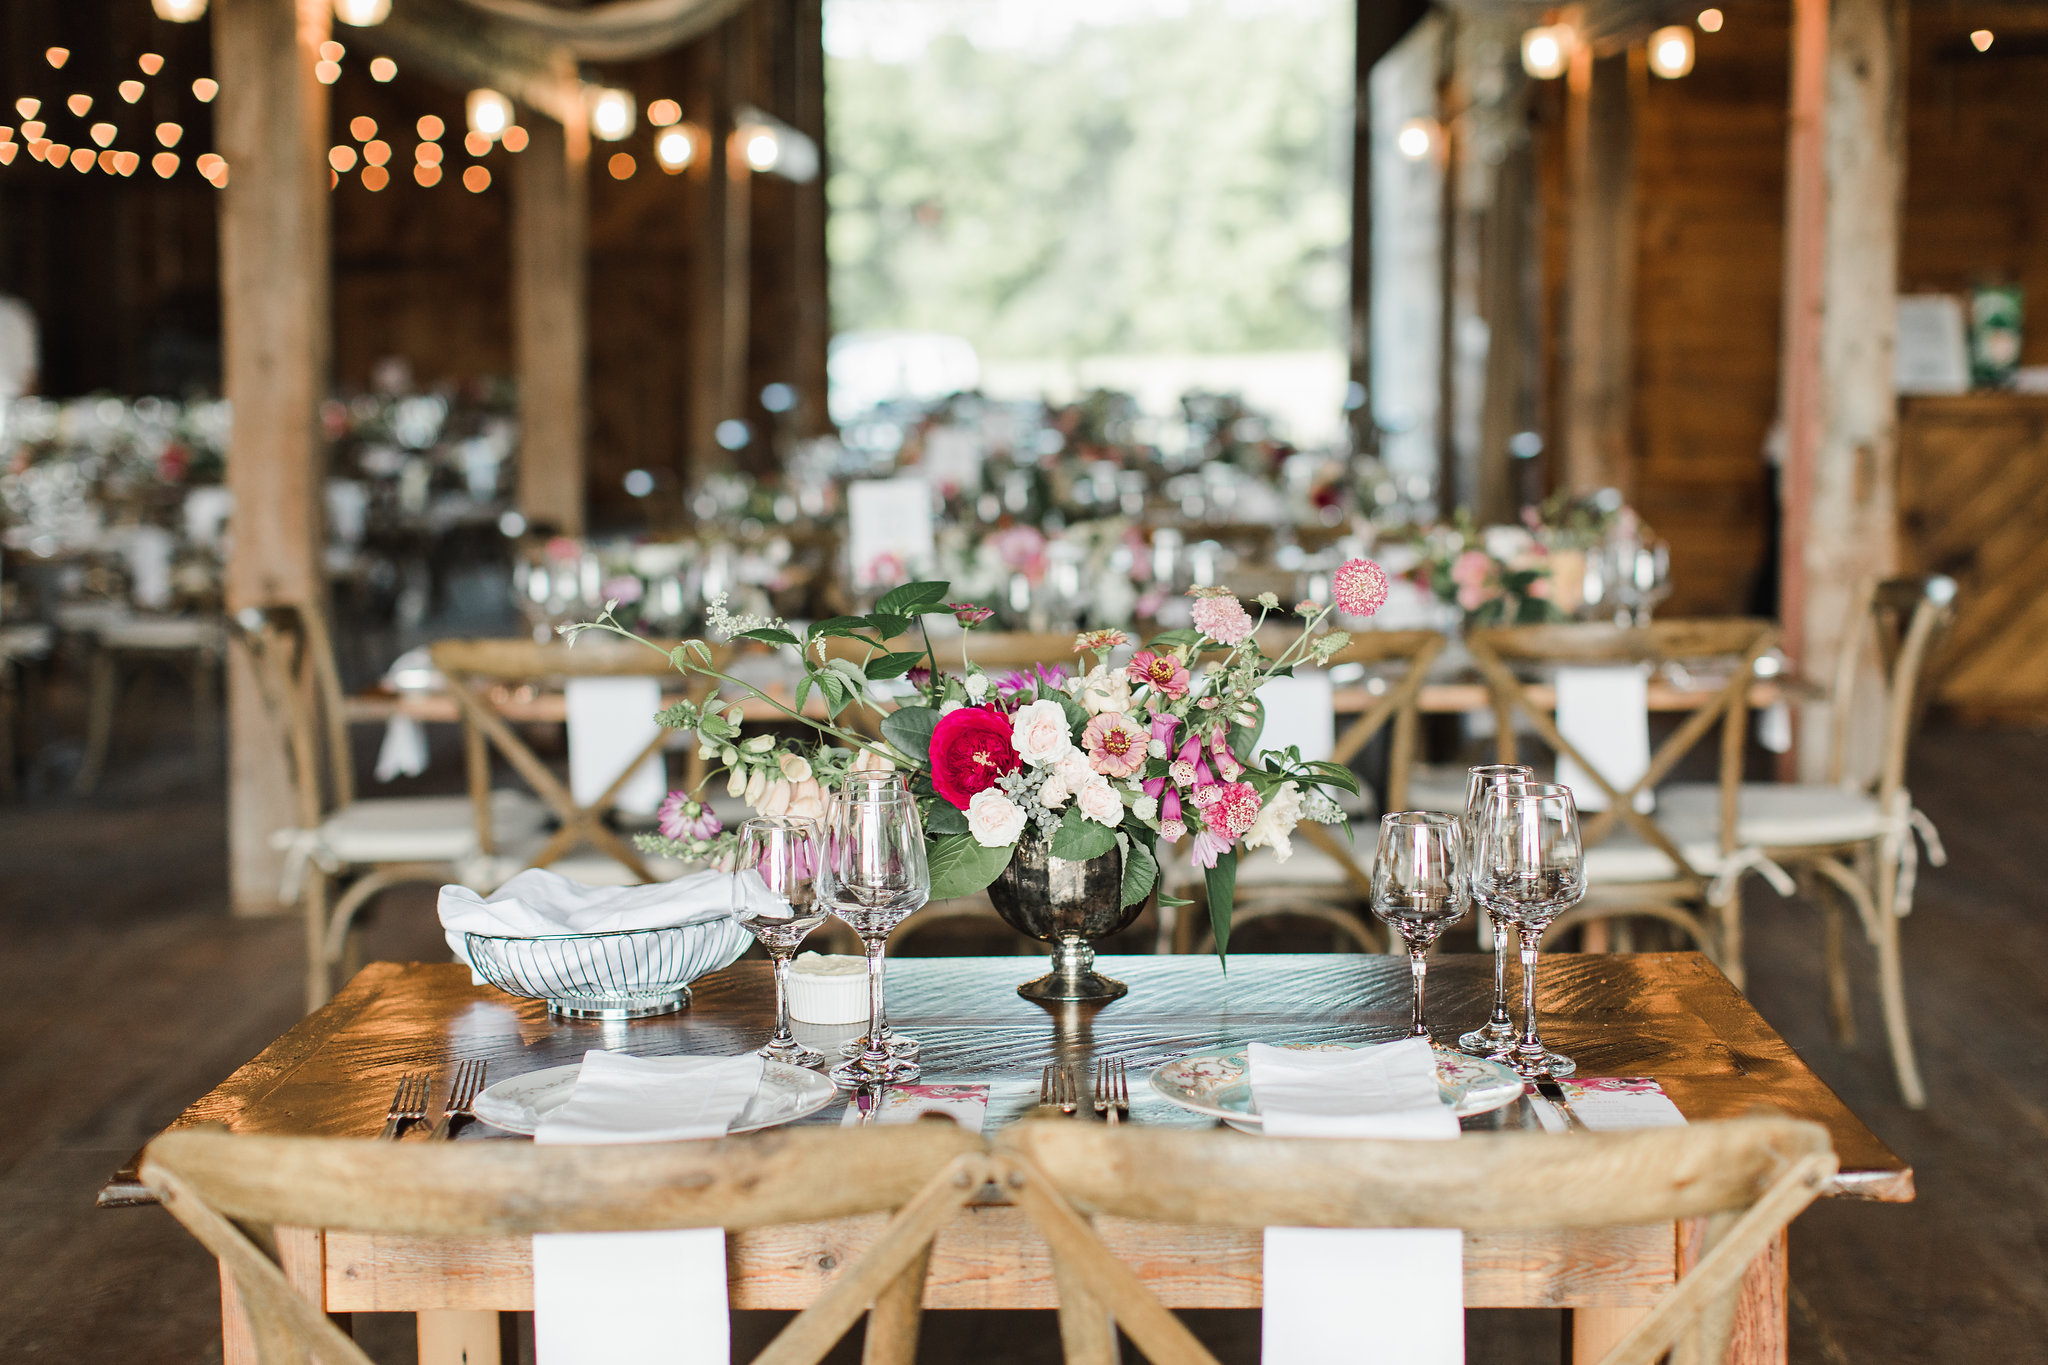 Watershed-Floral-Reception-Details-Shady-Lane-Farm-Barn-Wedding-49.jpg